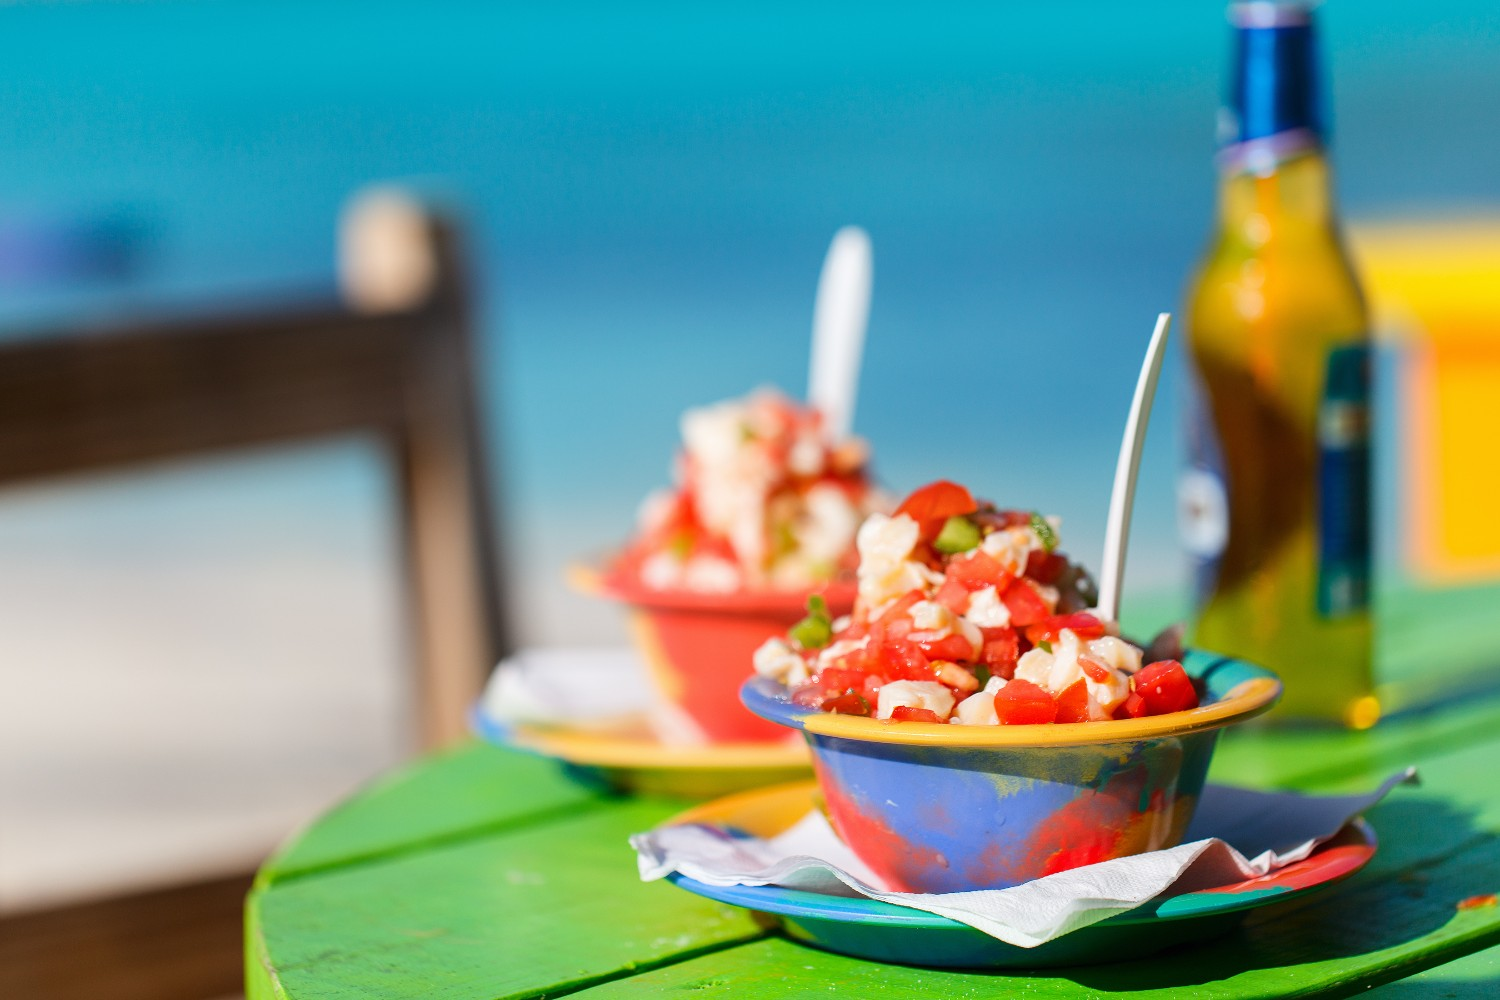 Two bowls of Bahamian conch salad and bottle of beer